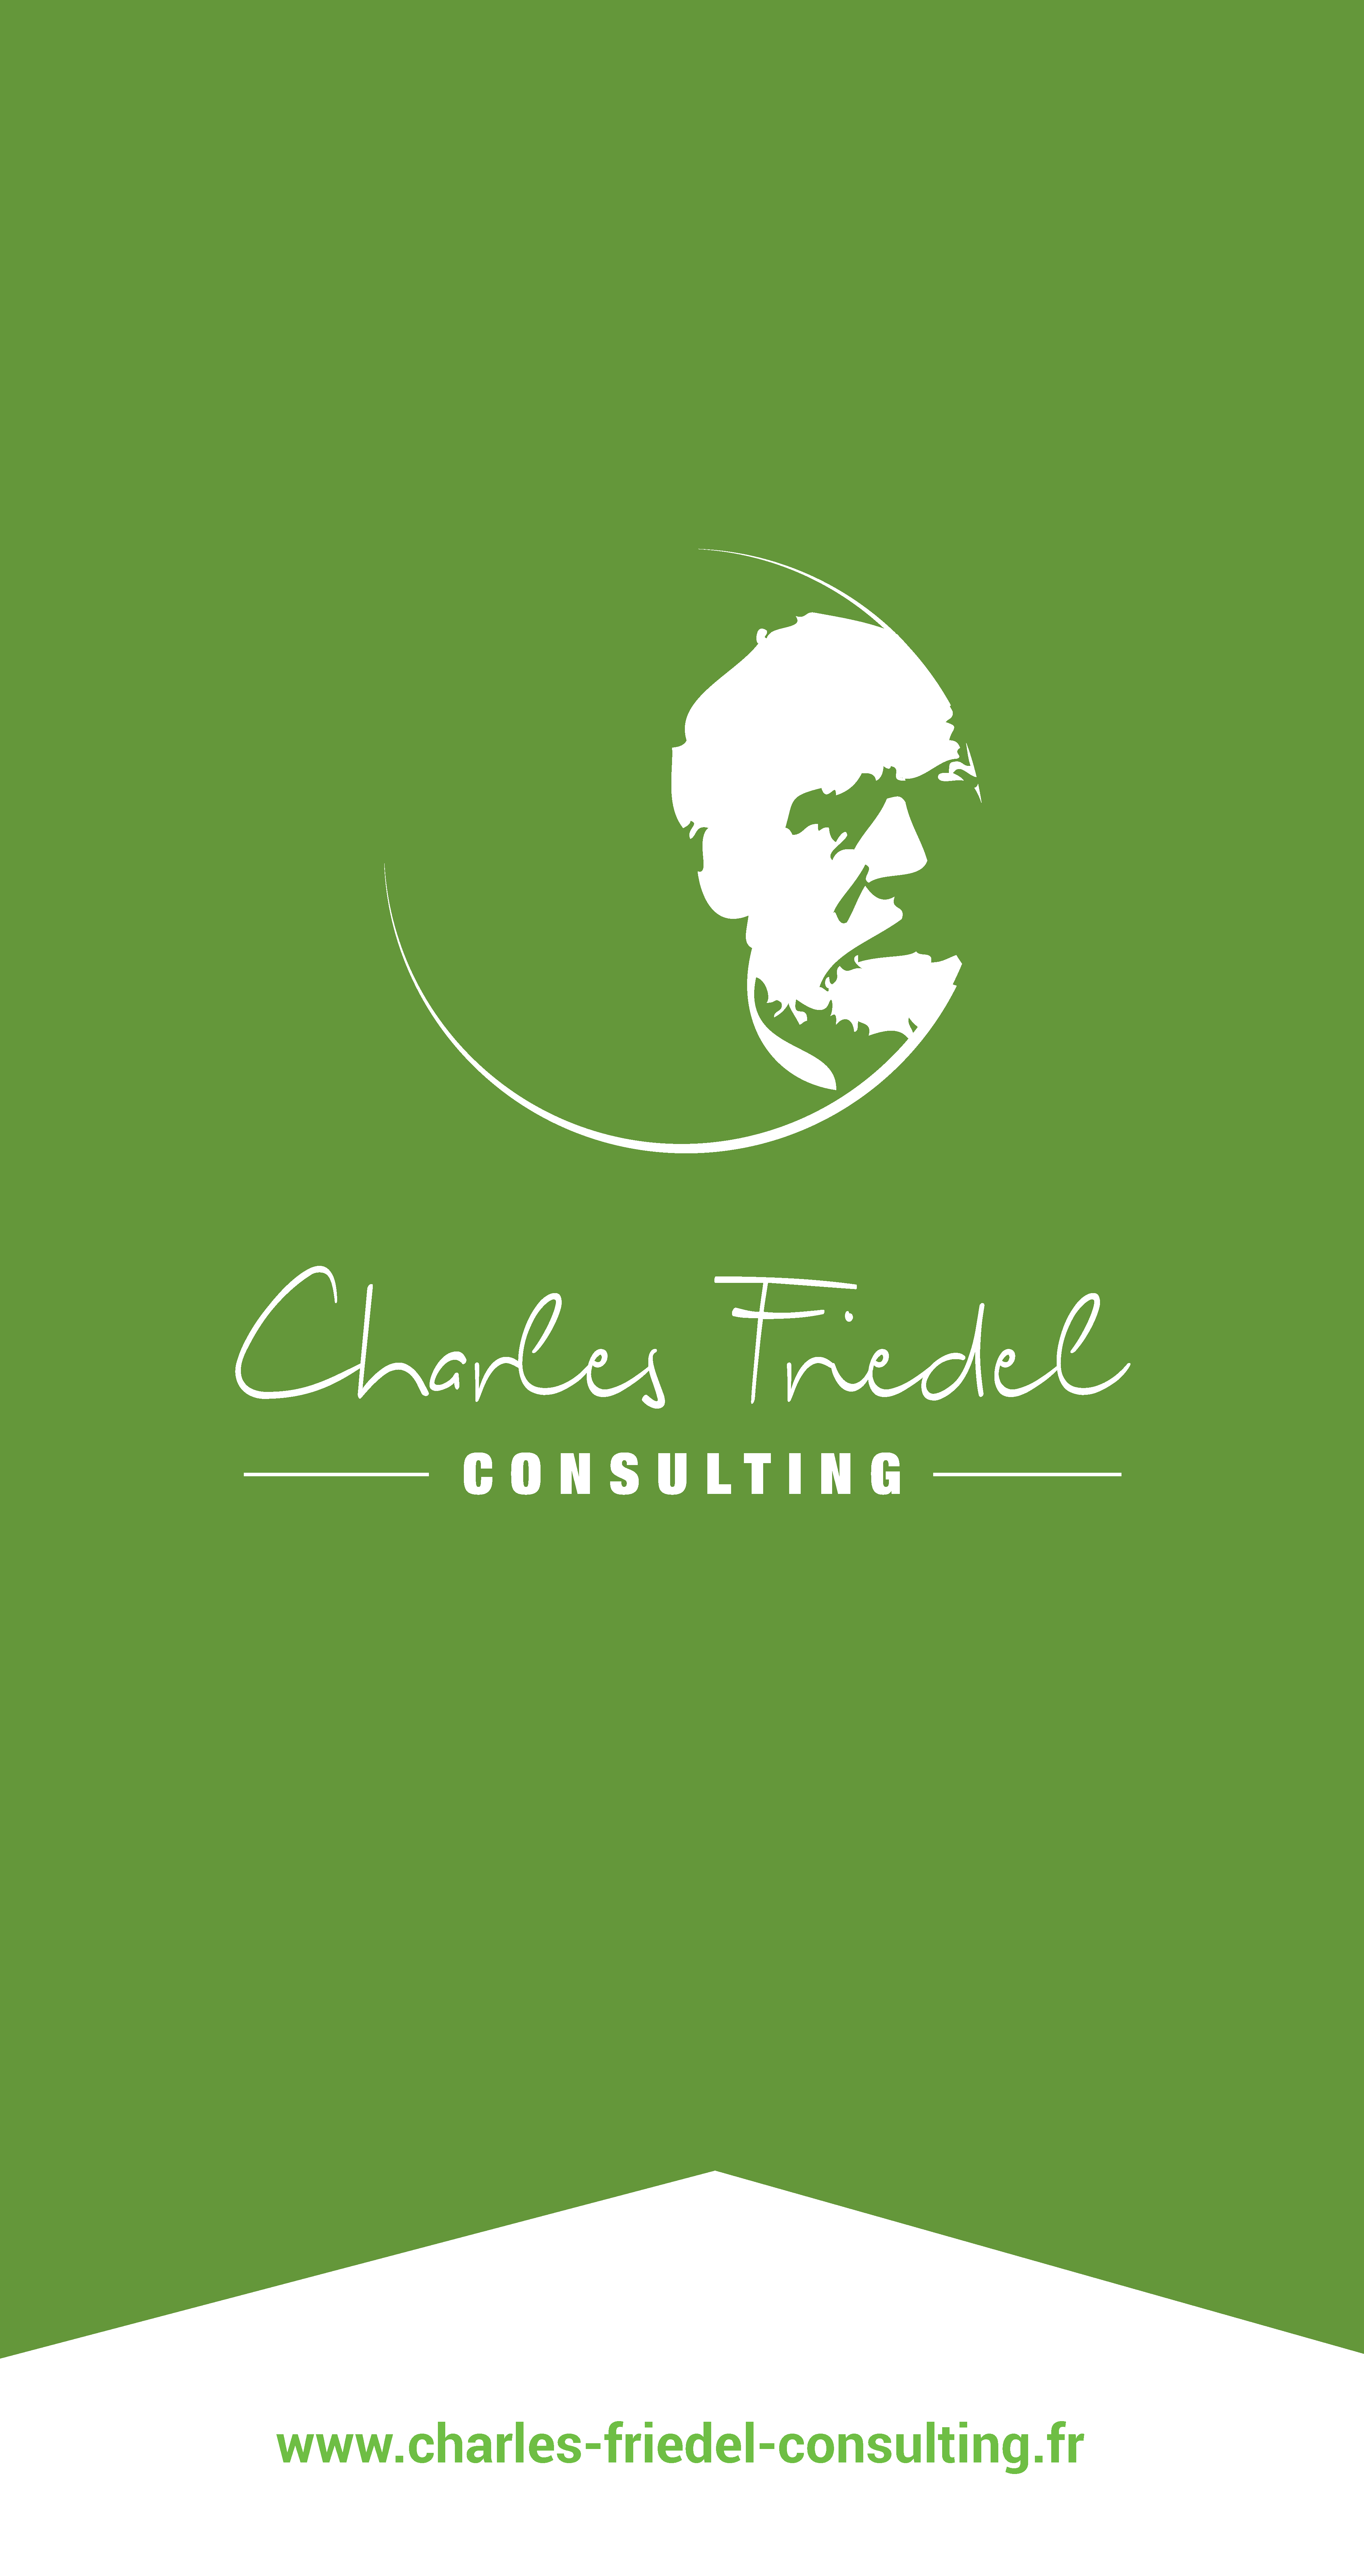 Charles Friedel Consulting